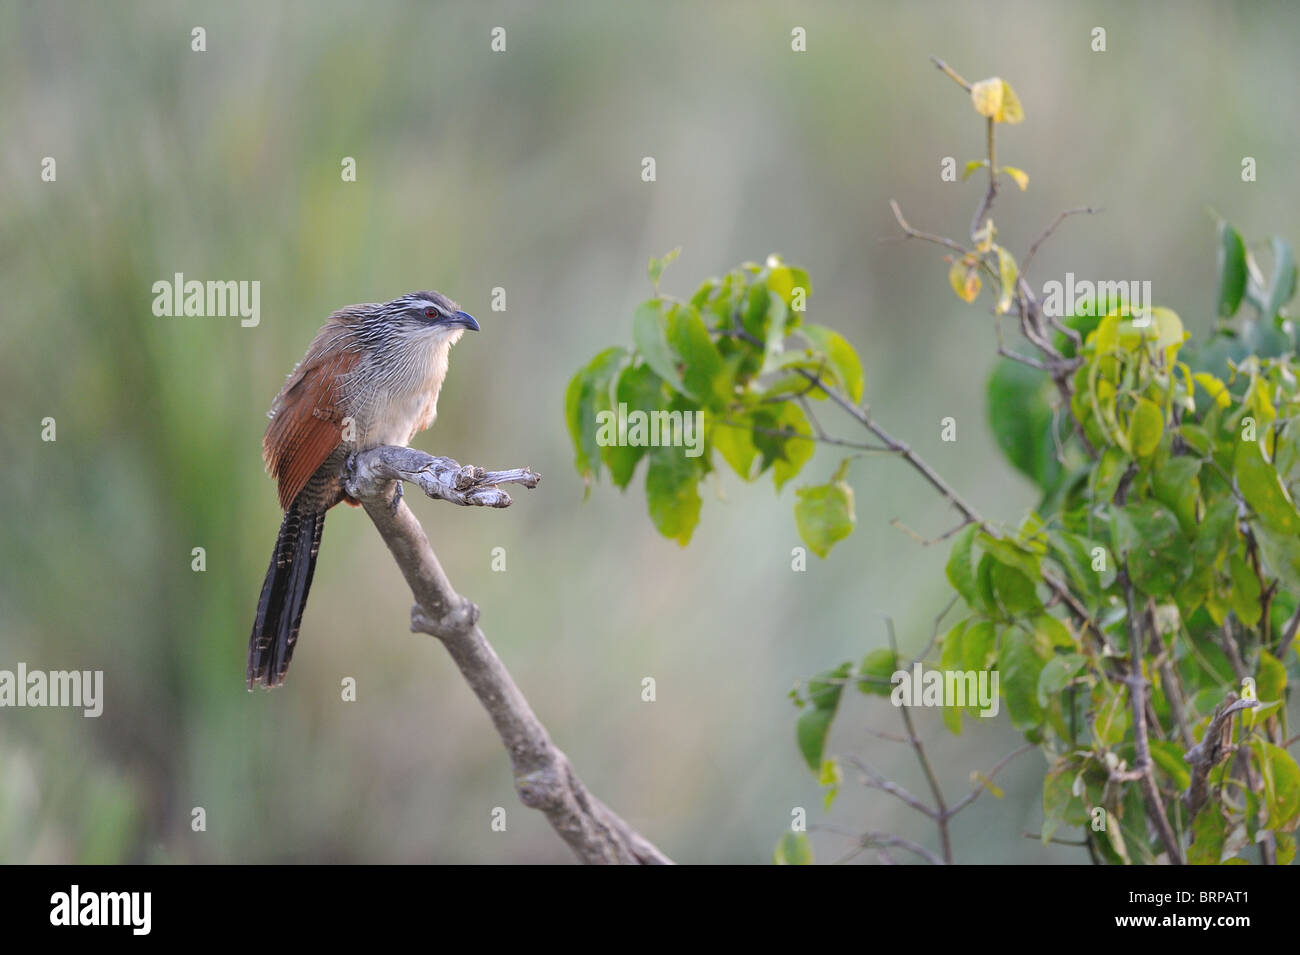 White-browed coucal - Burchell's Coucal - Lark-heeled Cuckoo (Centropus superciliosus) perched on a branch - Stock Image